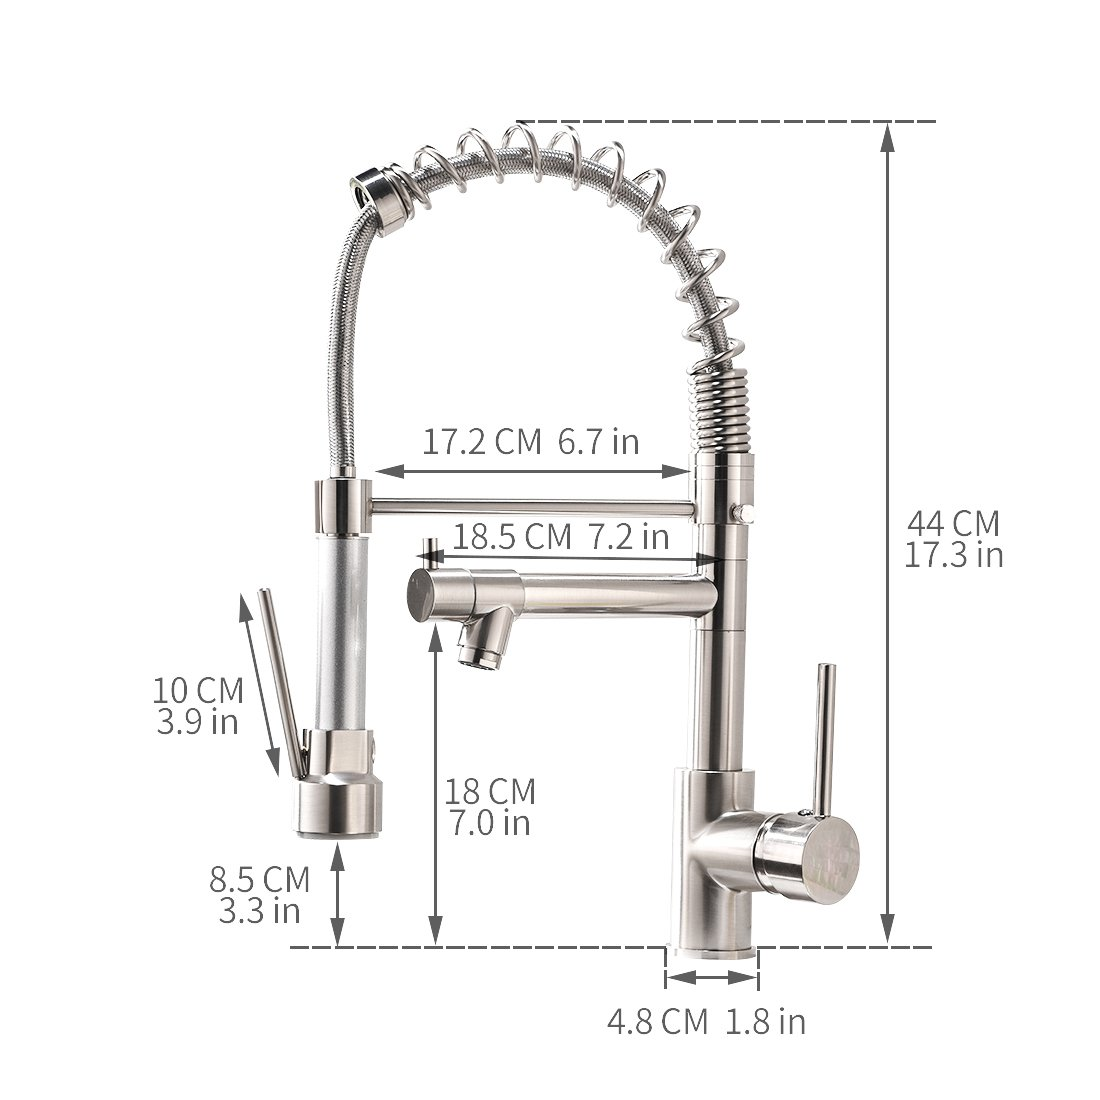 Aimadi Contemporary Kitchen Sink Faucet - Single Handle Stainless Steel Kitchen Faucets with Pull Down Sprayer,Brushed Nickel by AIMADI (Image #6)